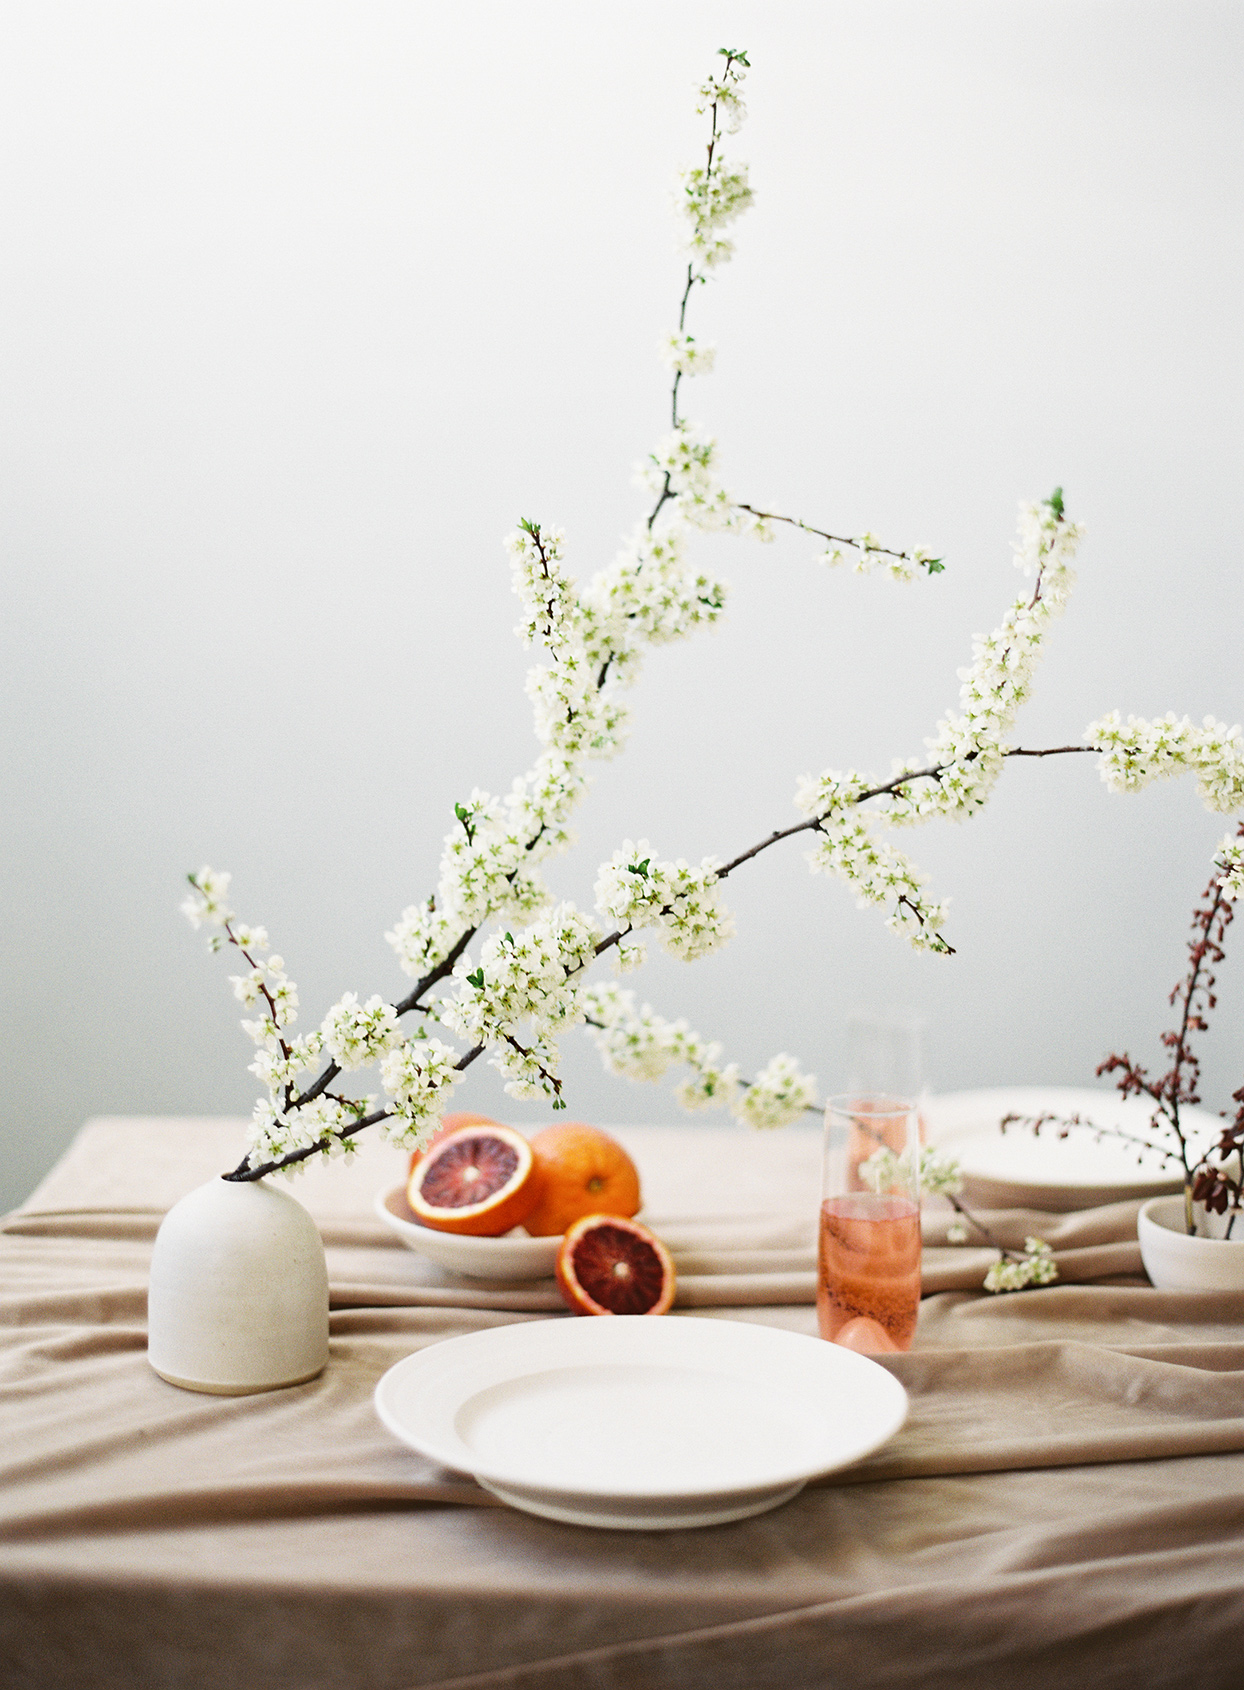 minimalist ikebana short vase with tall flowers on table with oranges